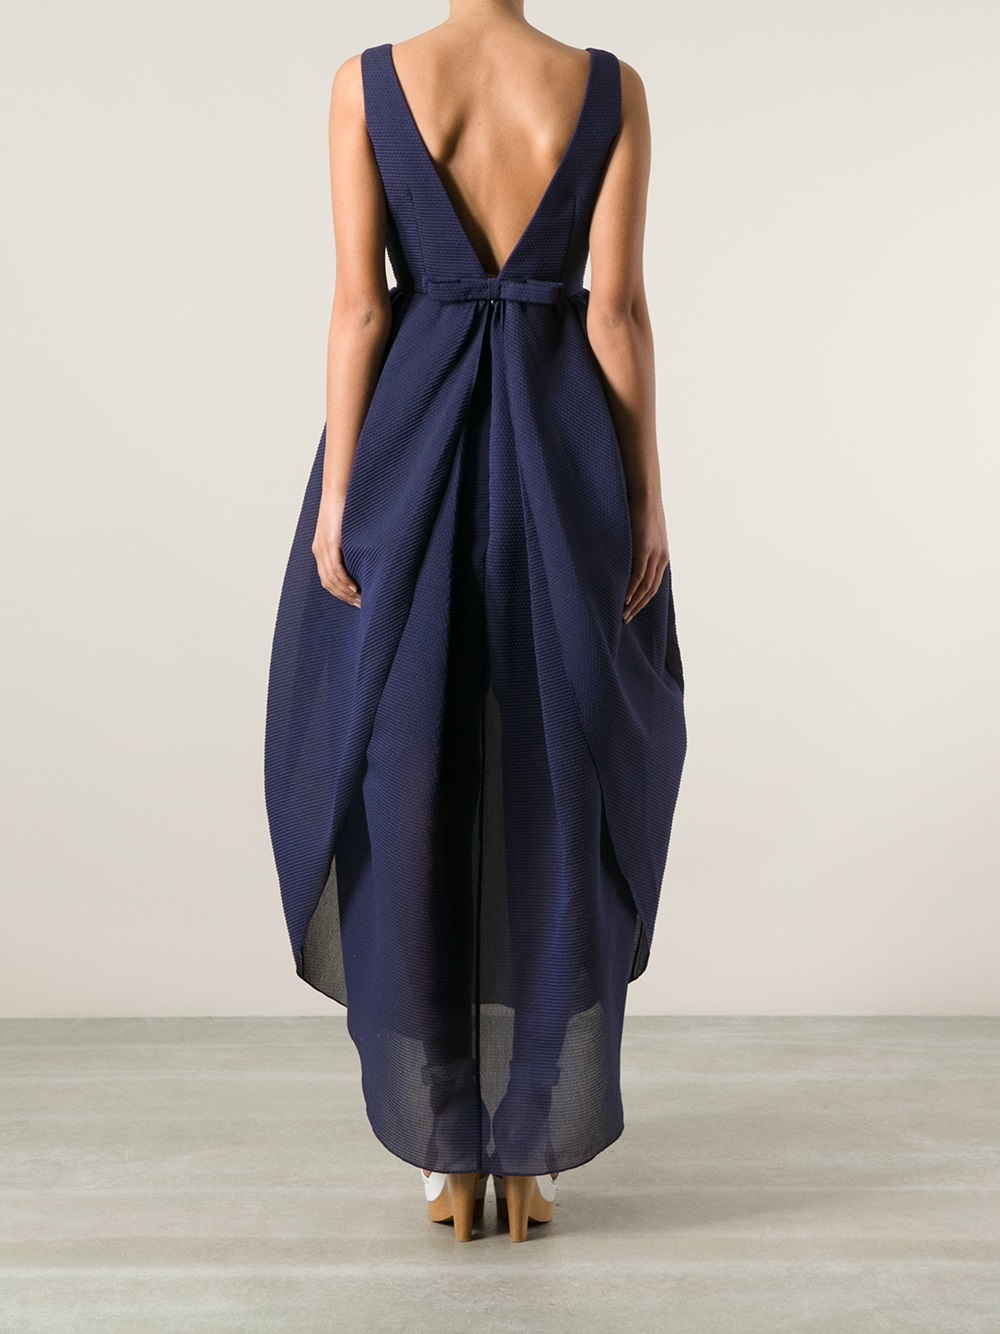 Awesome Carven Gown Image - Ball Gown Wedding Dresses - wietpas.info